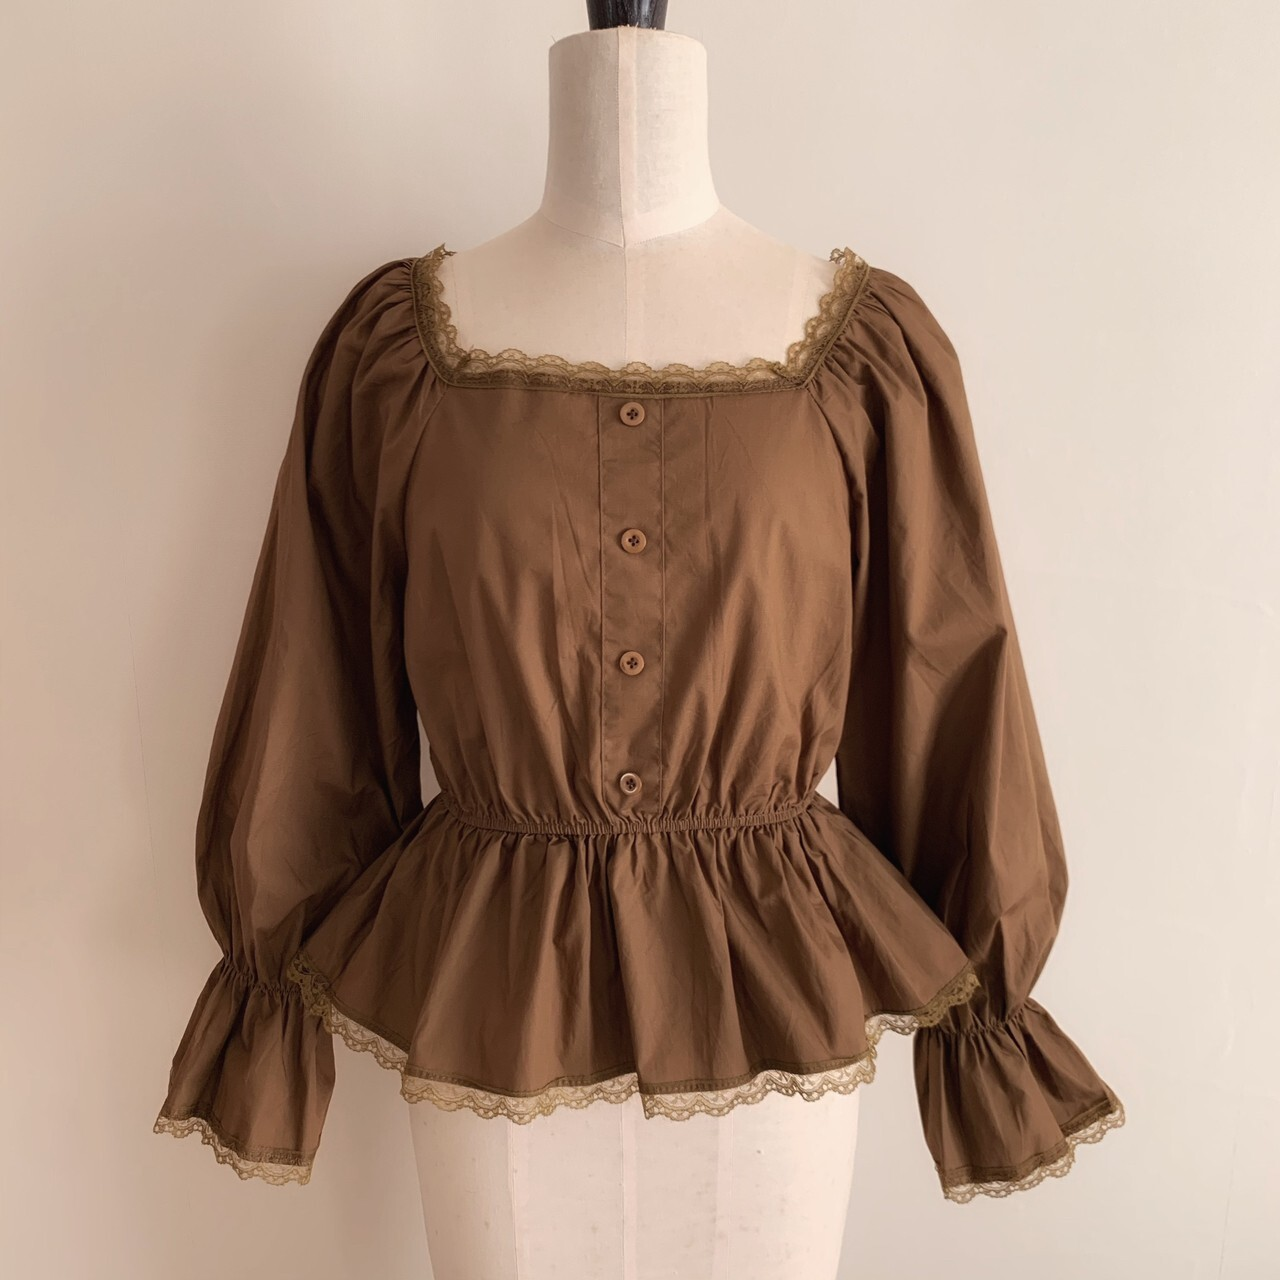 【meltie】coconut brown girly blouse